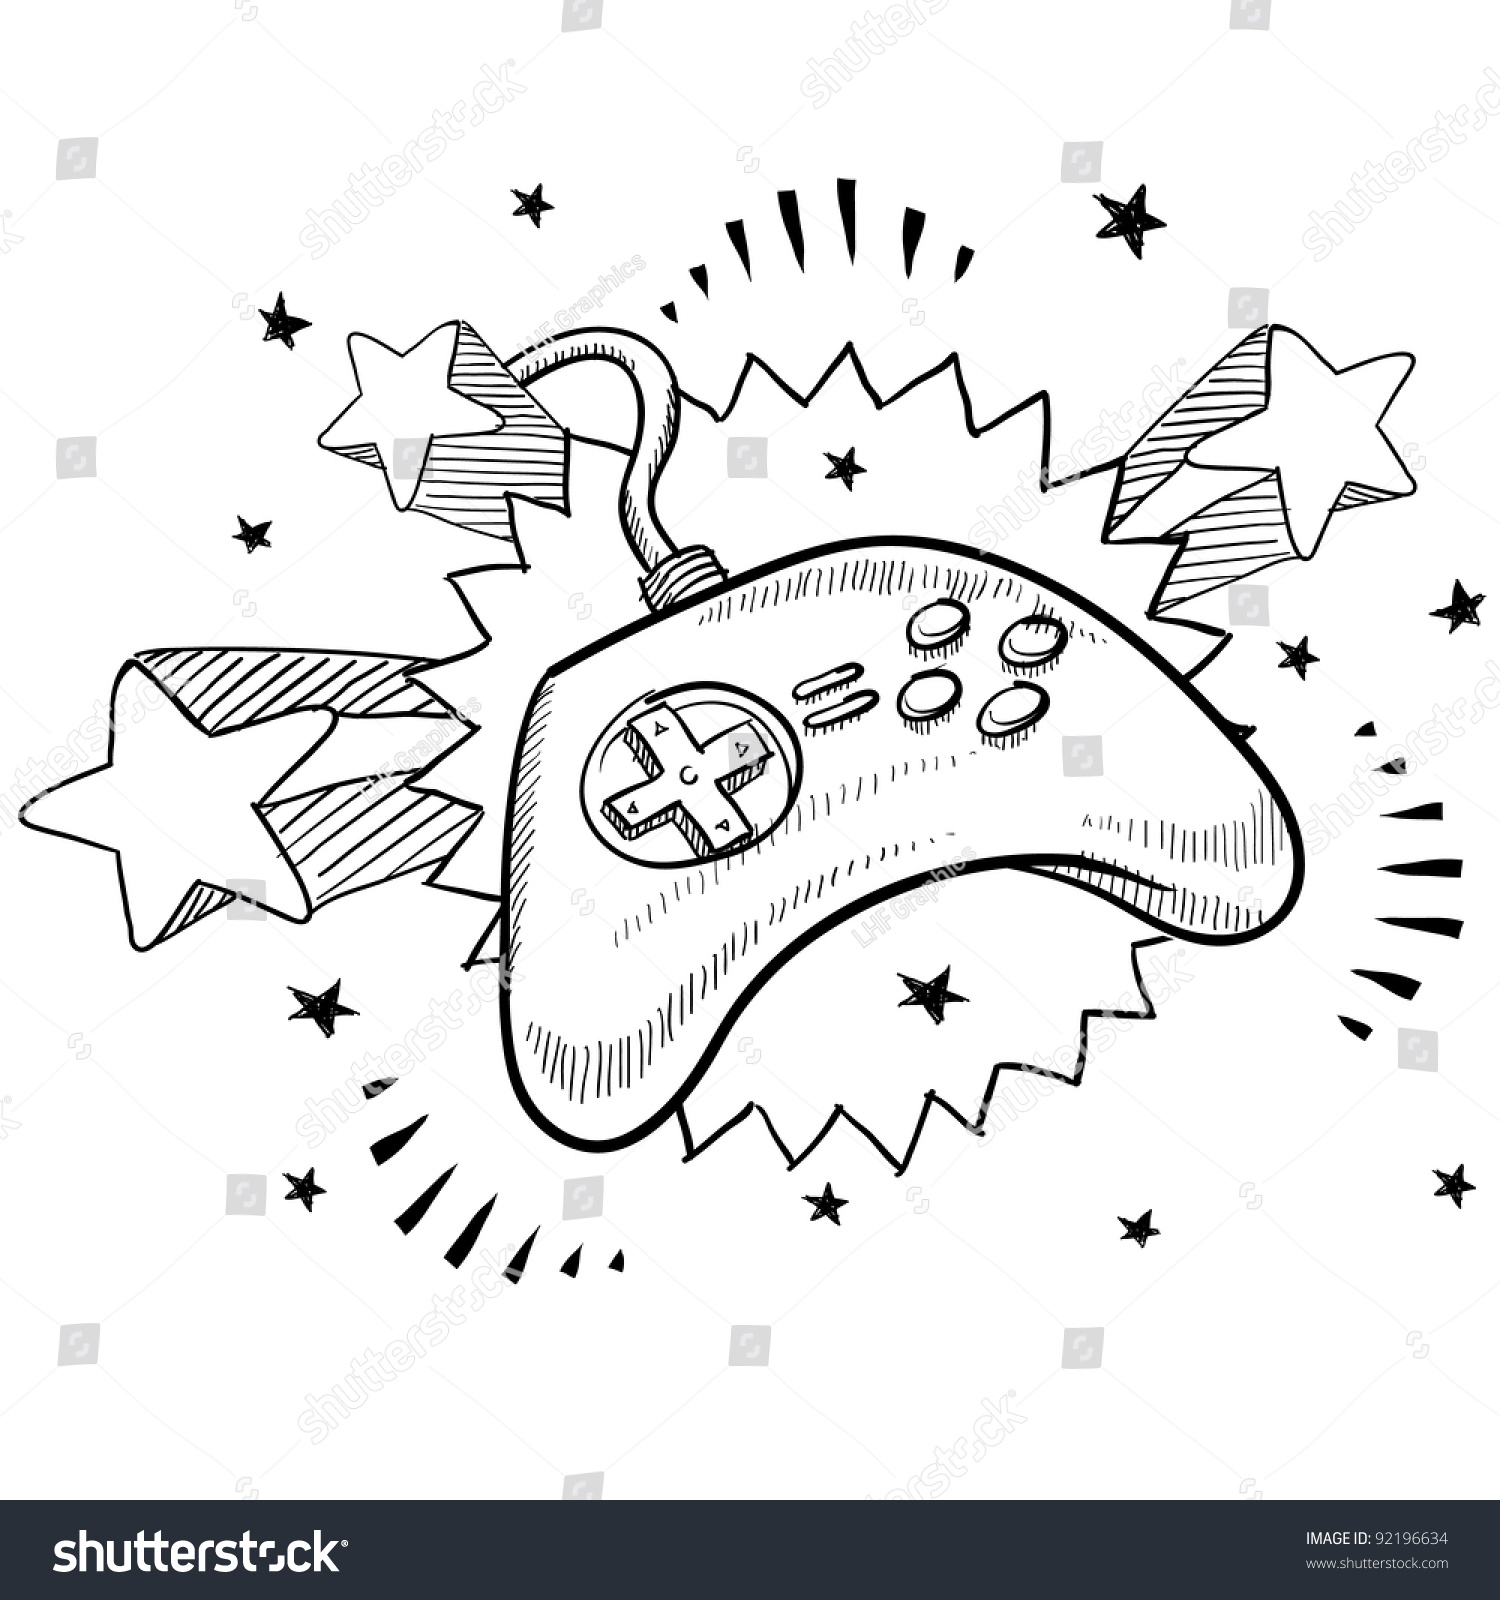 doodle style video game controller illustration stock vector 1970 Popular Games doodle style video game controller illustration in vector format with retro 1970s pop background